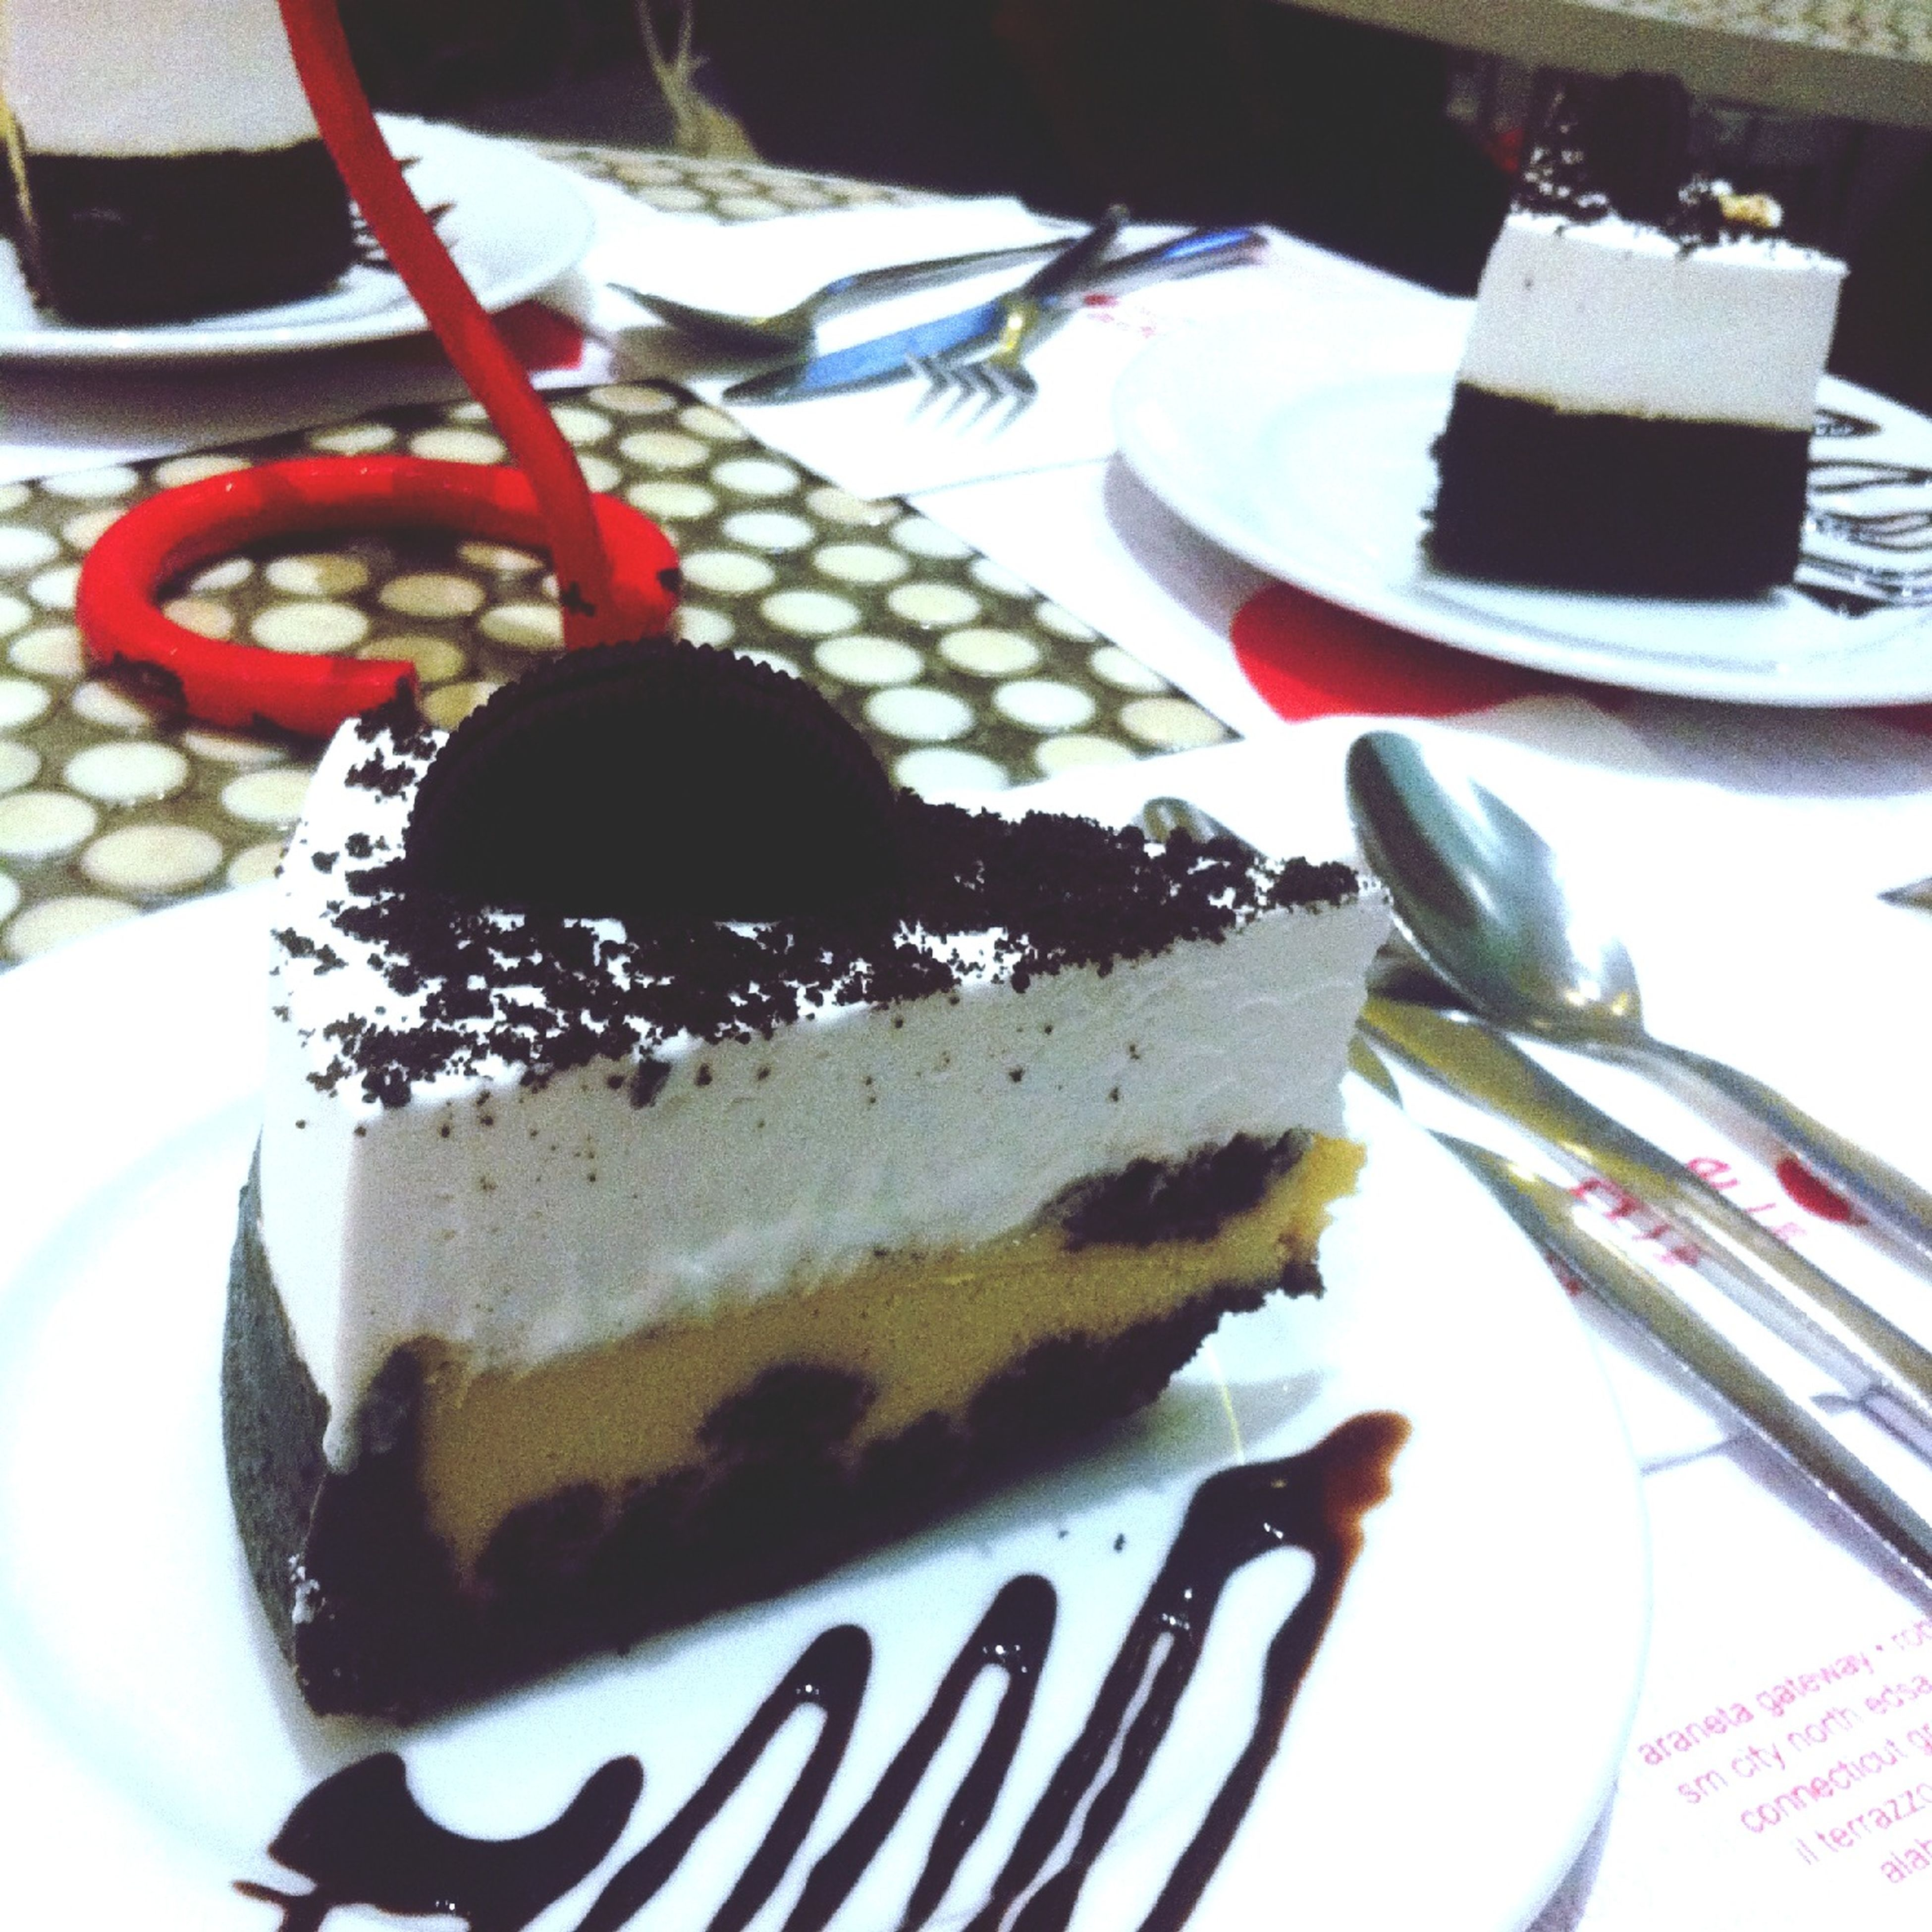 food and drink, indoors, sweet food, dessert, food, table, freshness, still life, plate, indulgence, cake, ready-to-eat, high angle view, close-up, fork, unhealthy eating, chocolate, temptation, serving size, no people